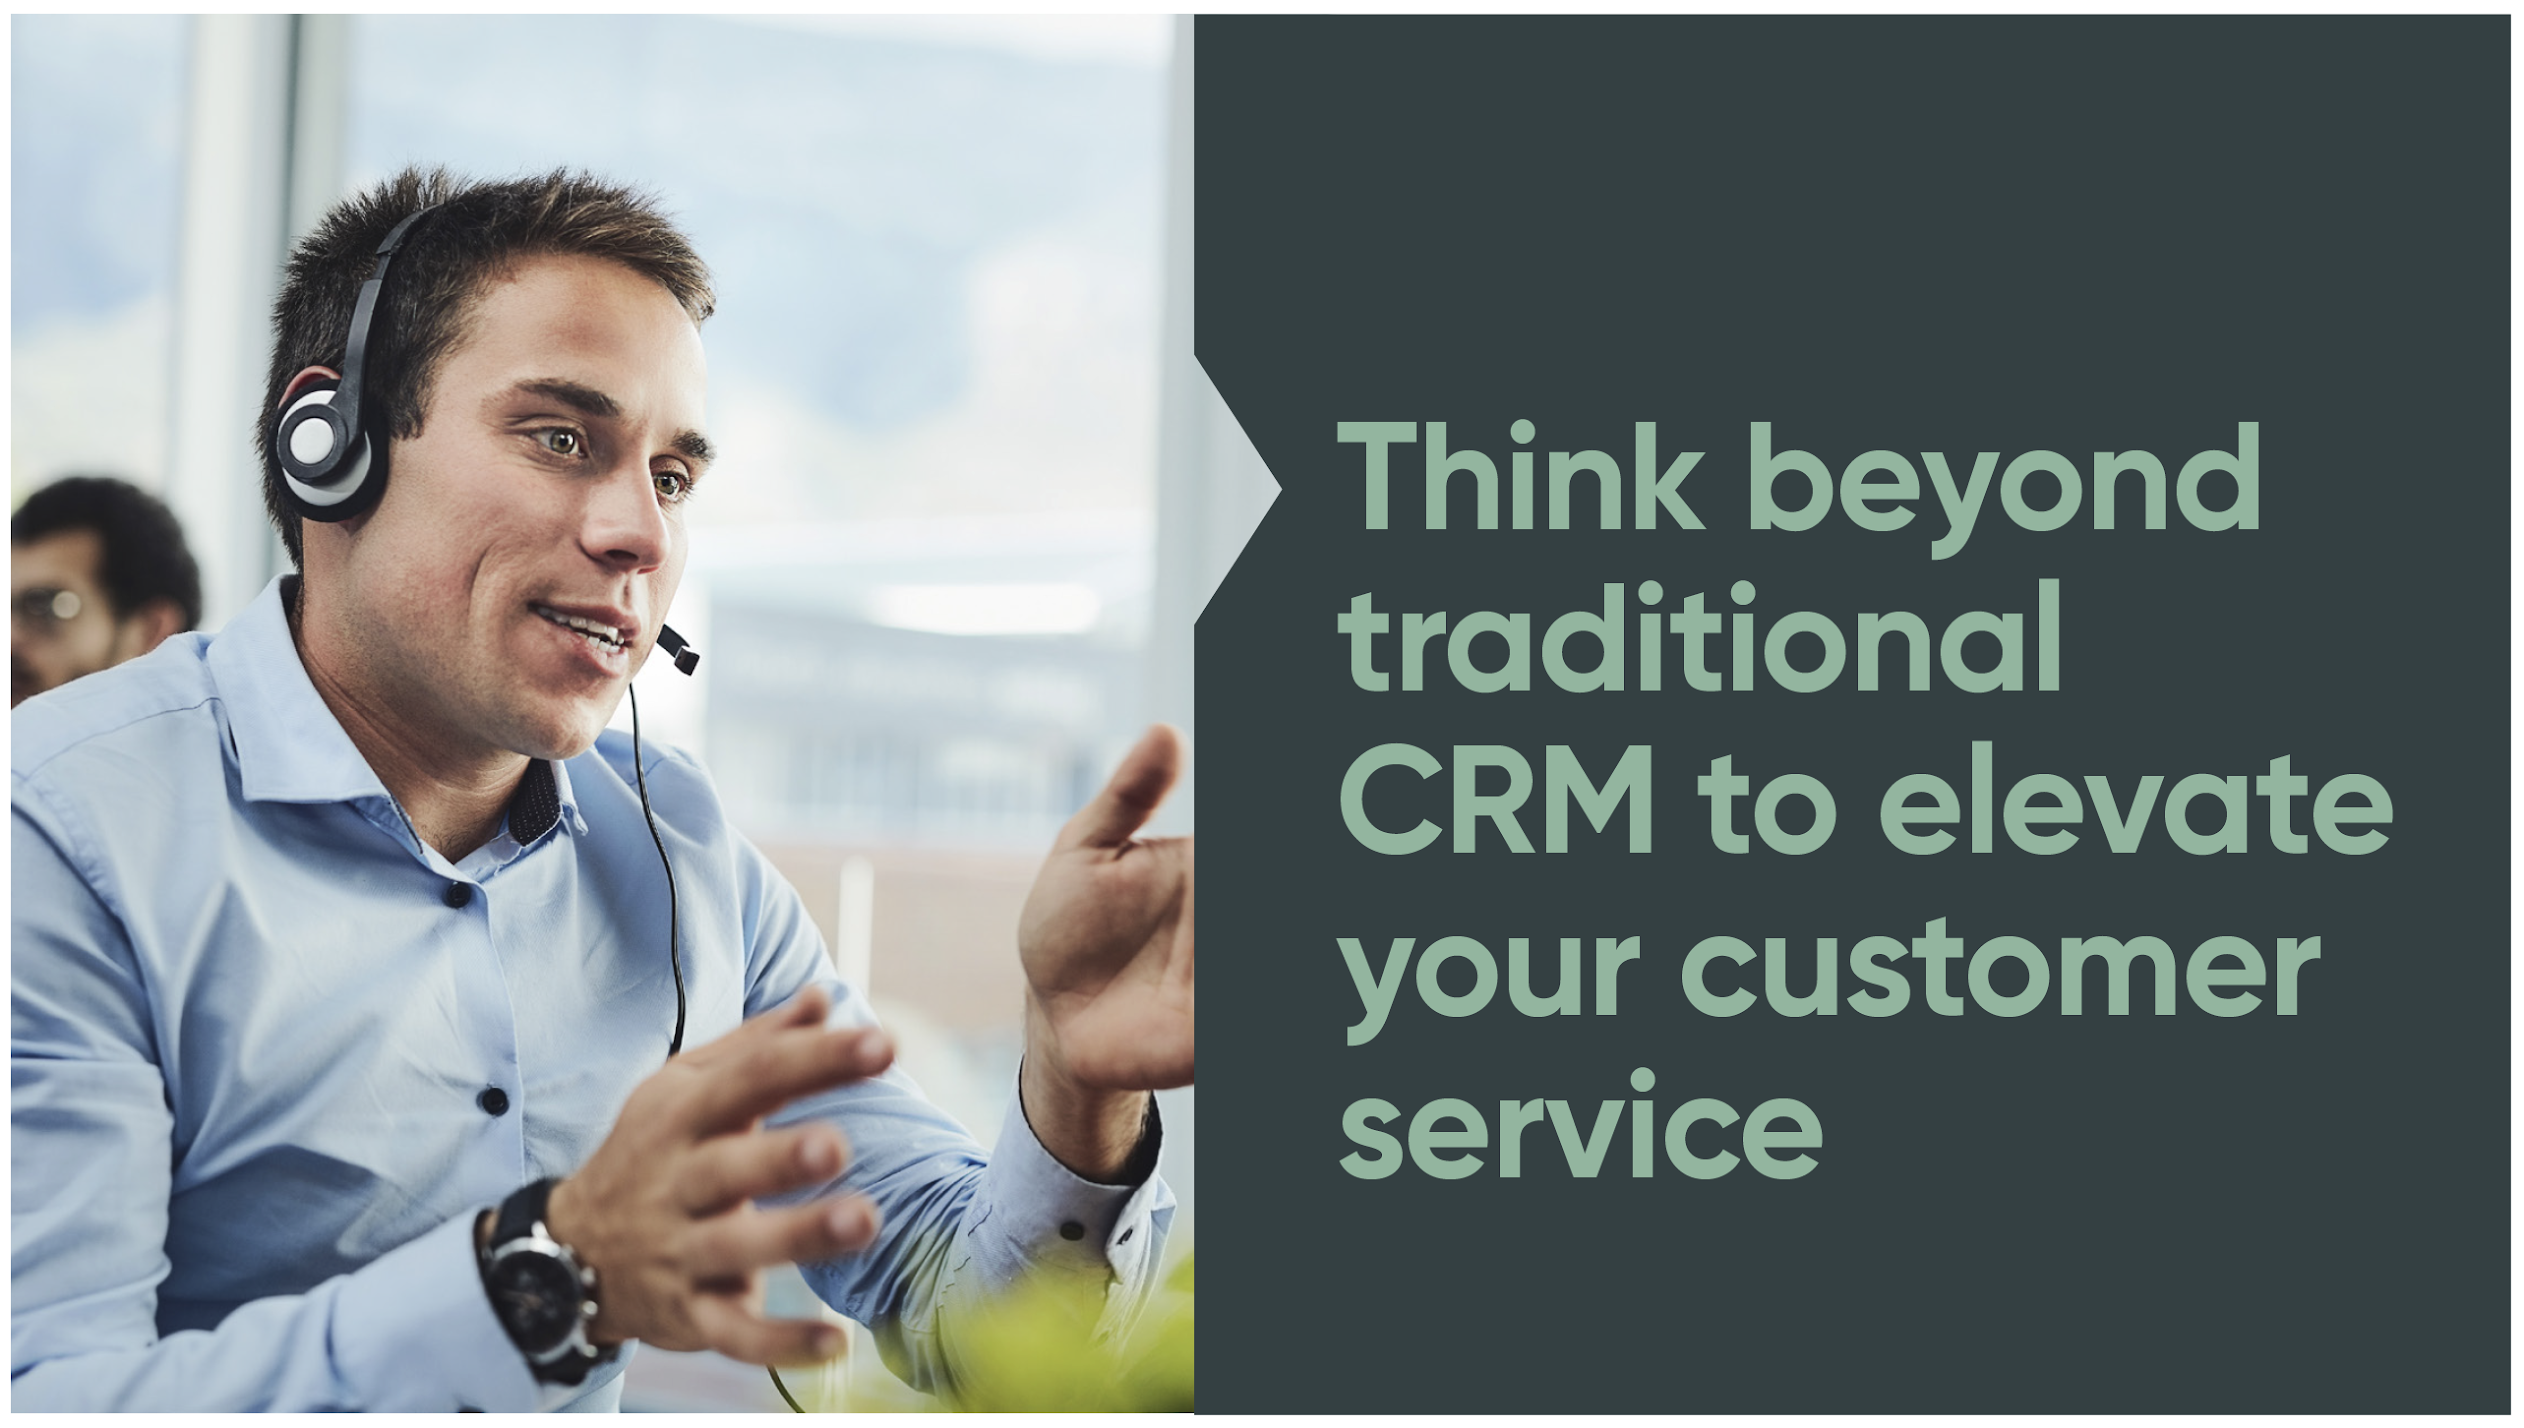 Think Beyond Traditional CRM and Focused on Sales to Elevate Customer Service